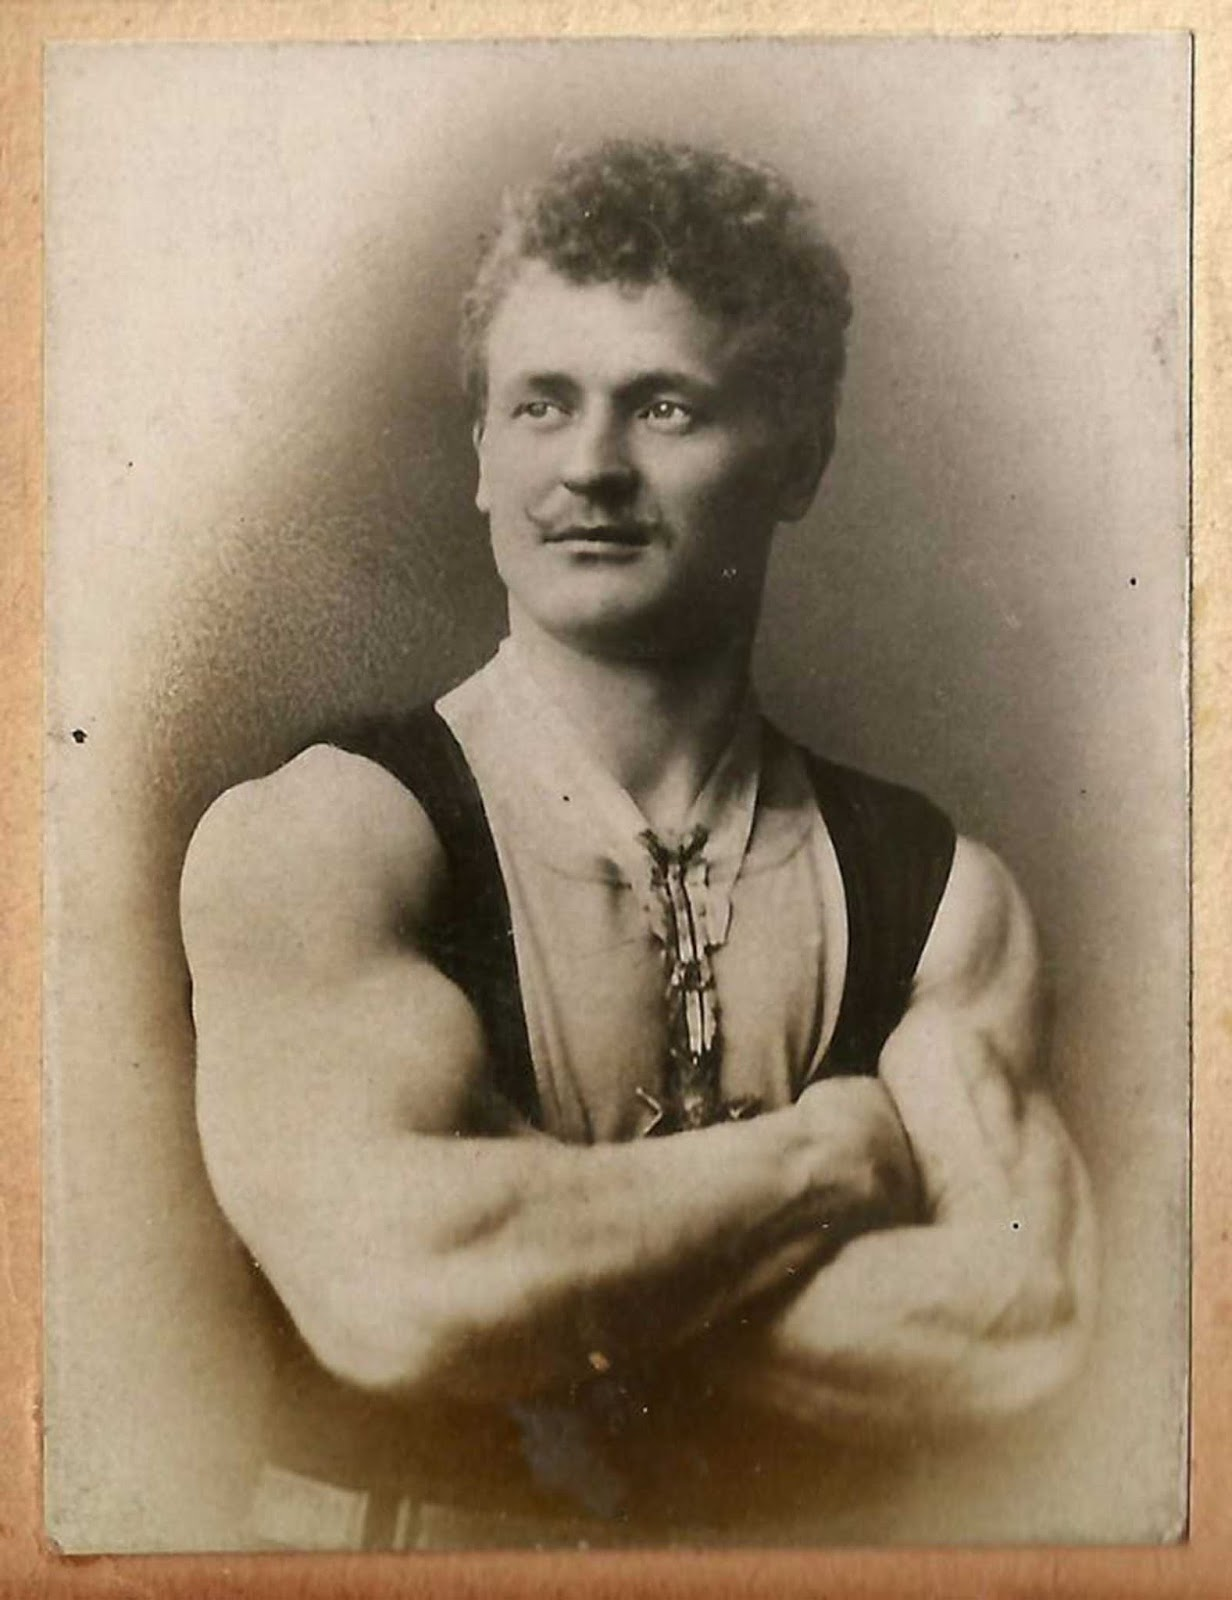 Eugen Sandow showing his guns.